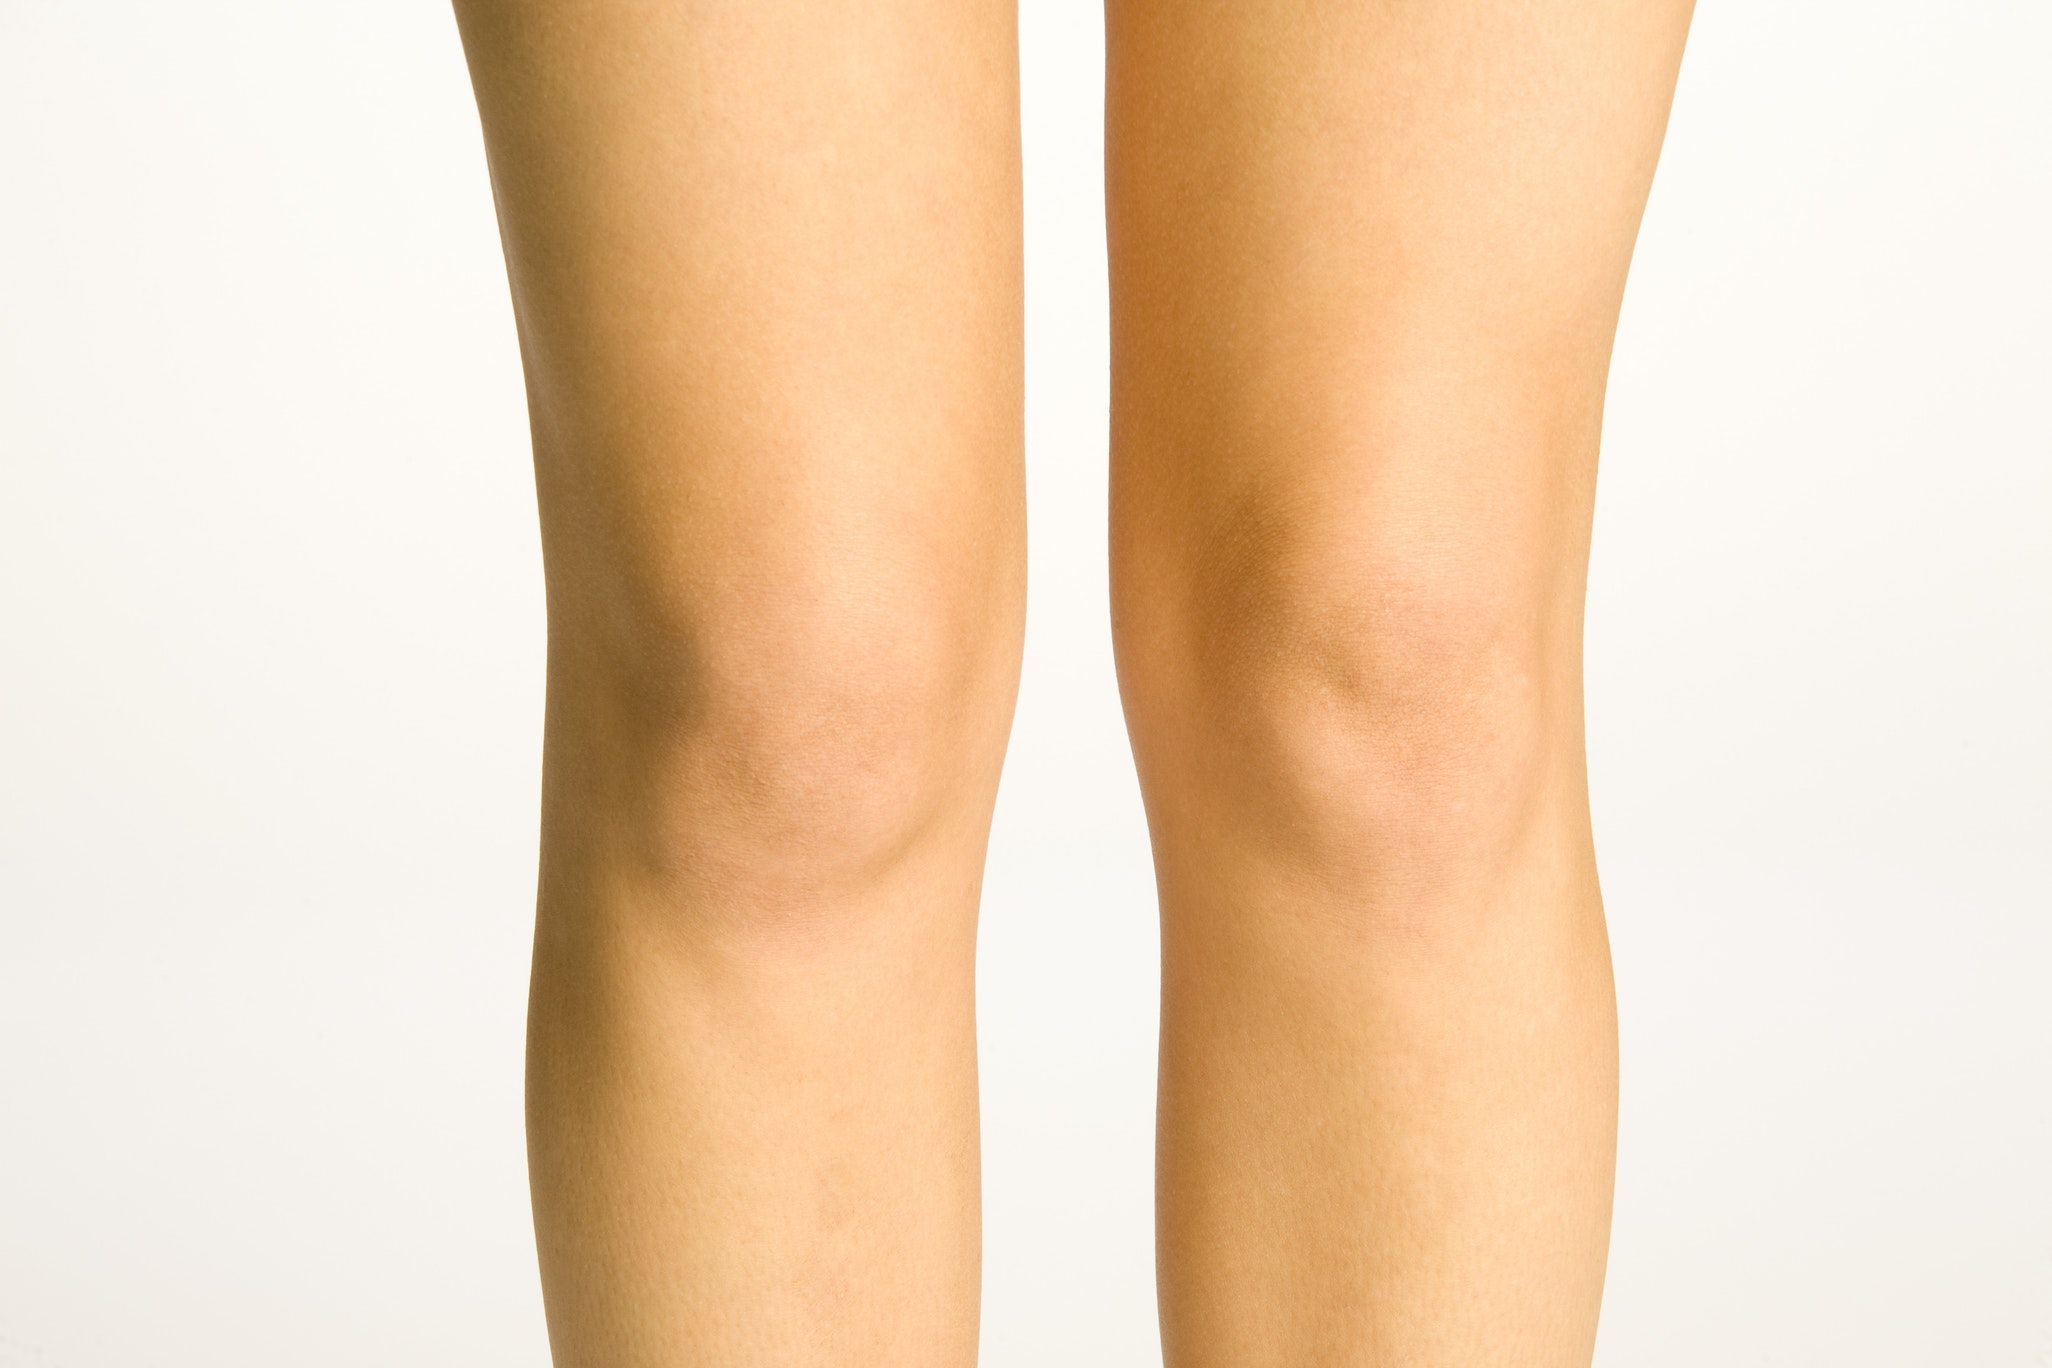 Minimally Invasive Knee Fat Removal: What Are Your Best Options?